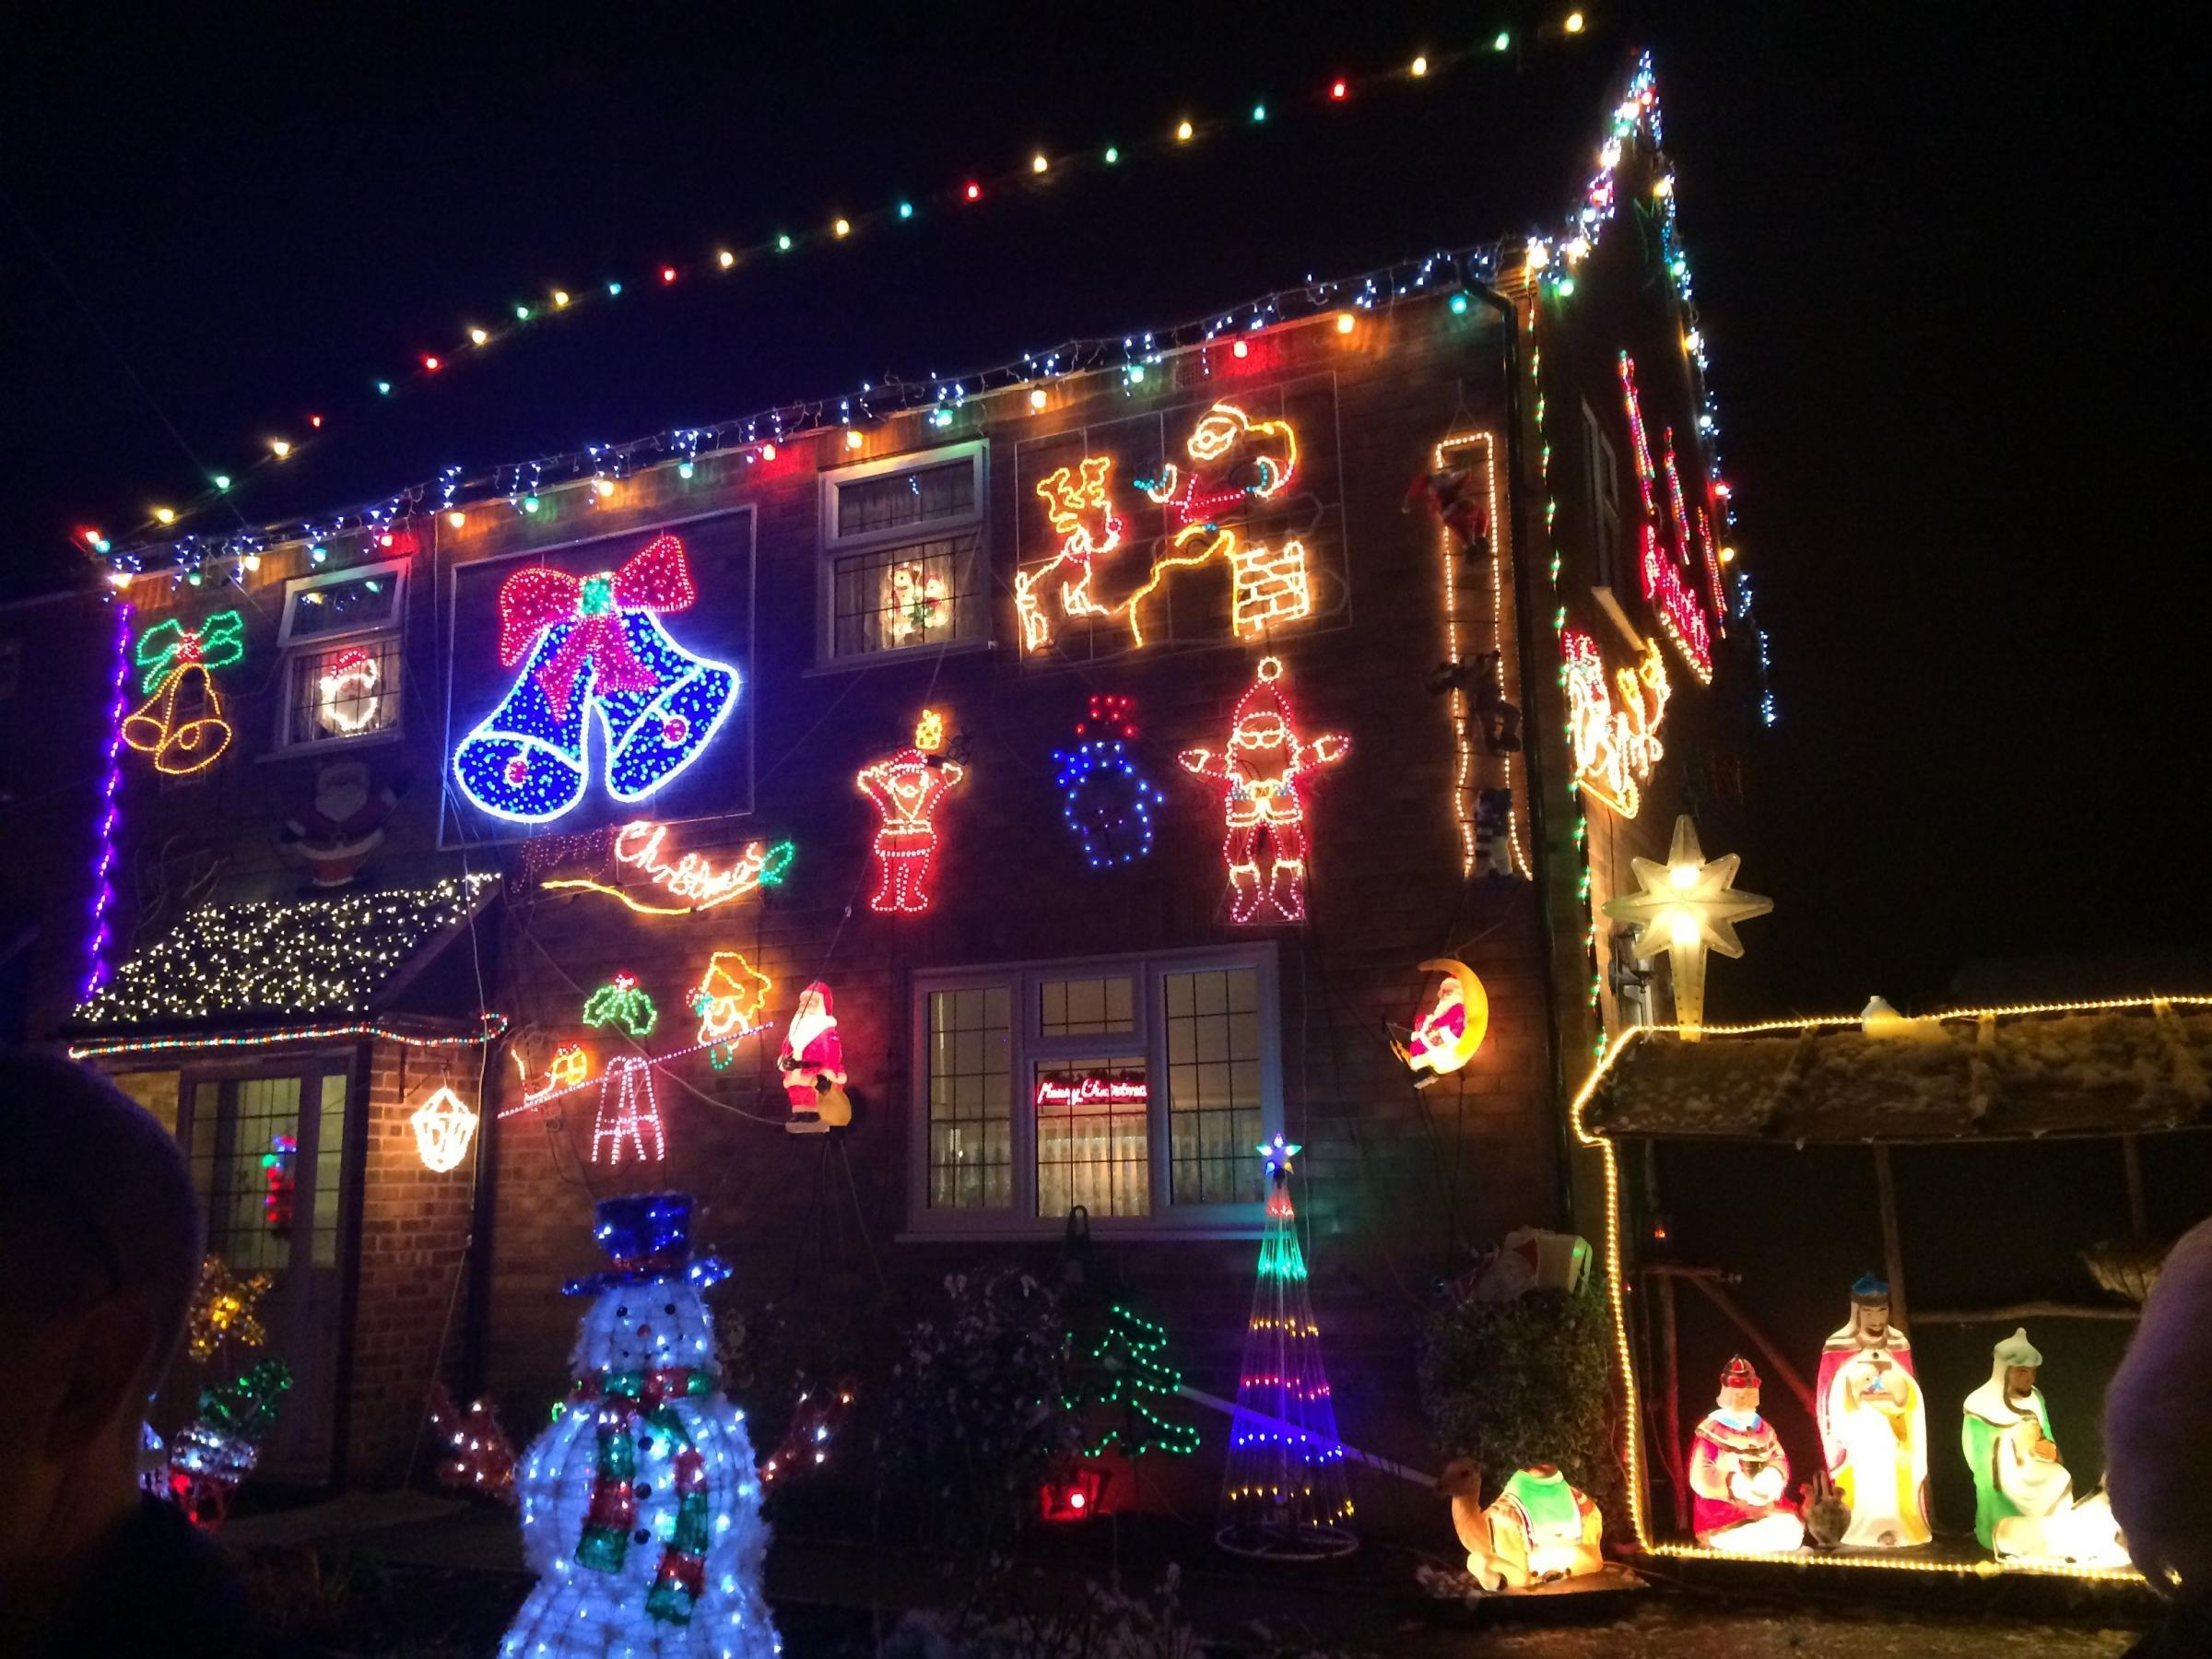 David Press displays around 5,000 lights at his home in Battlers Green Drive, Radlett, every year